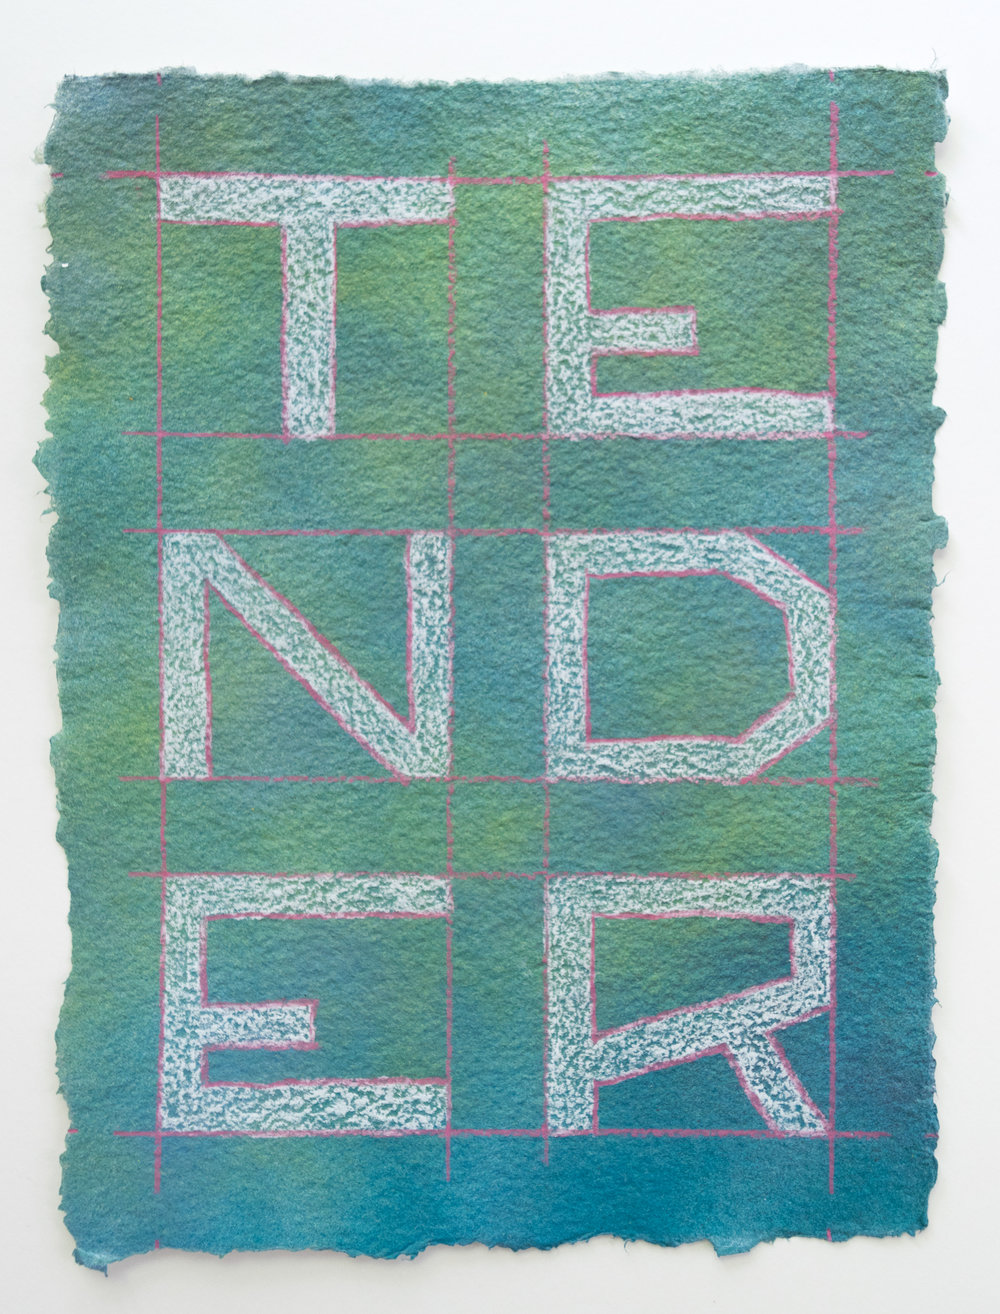 Sometimes Hard Somtimes (Tender)  Enamel, colored pencil, handmade paper  9 x 12 inches  2017